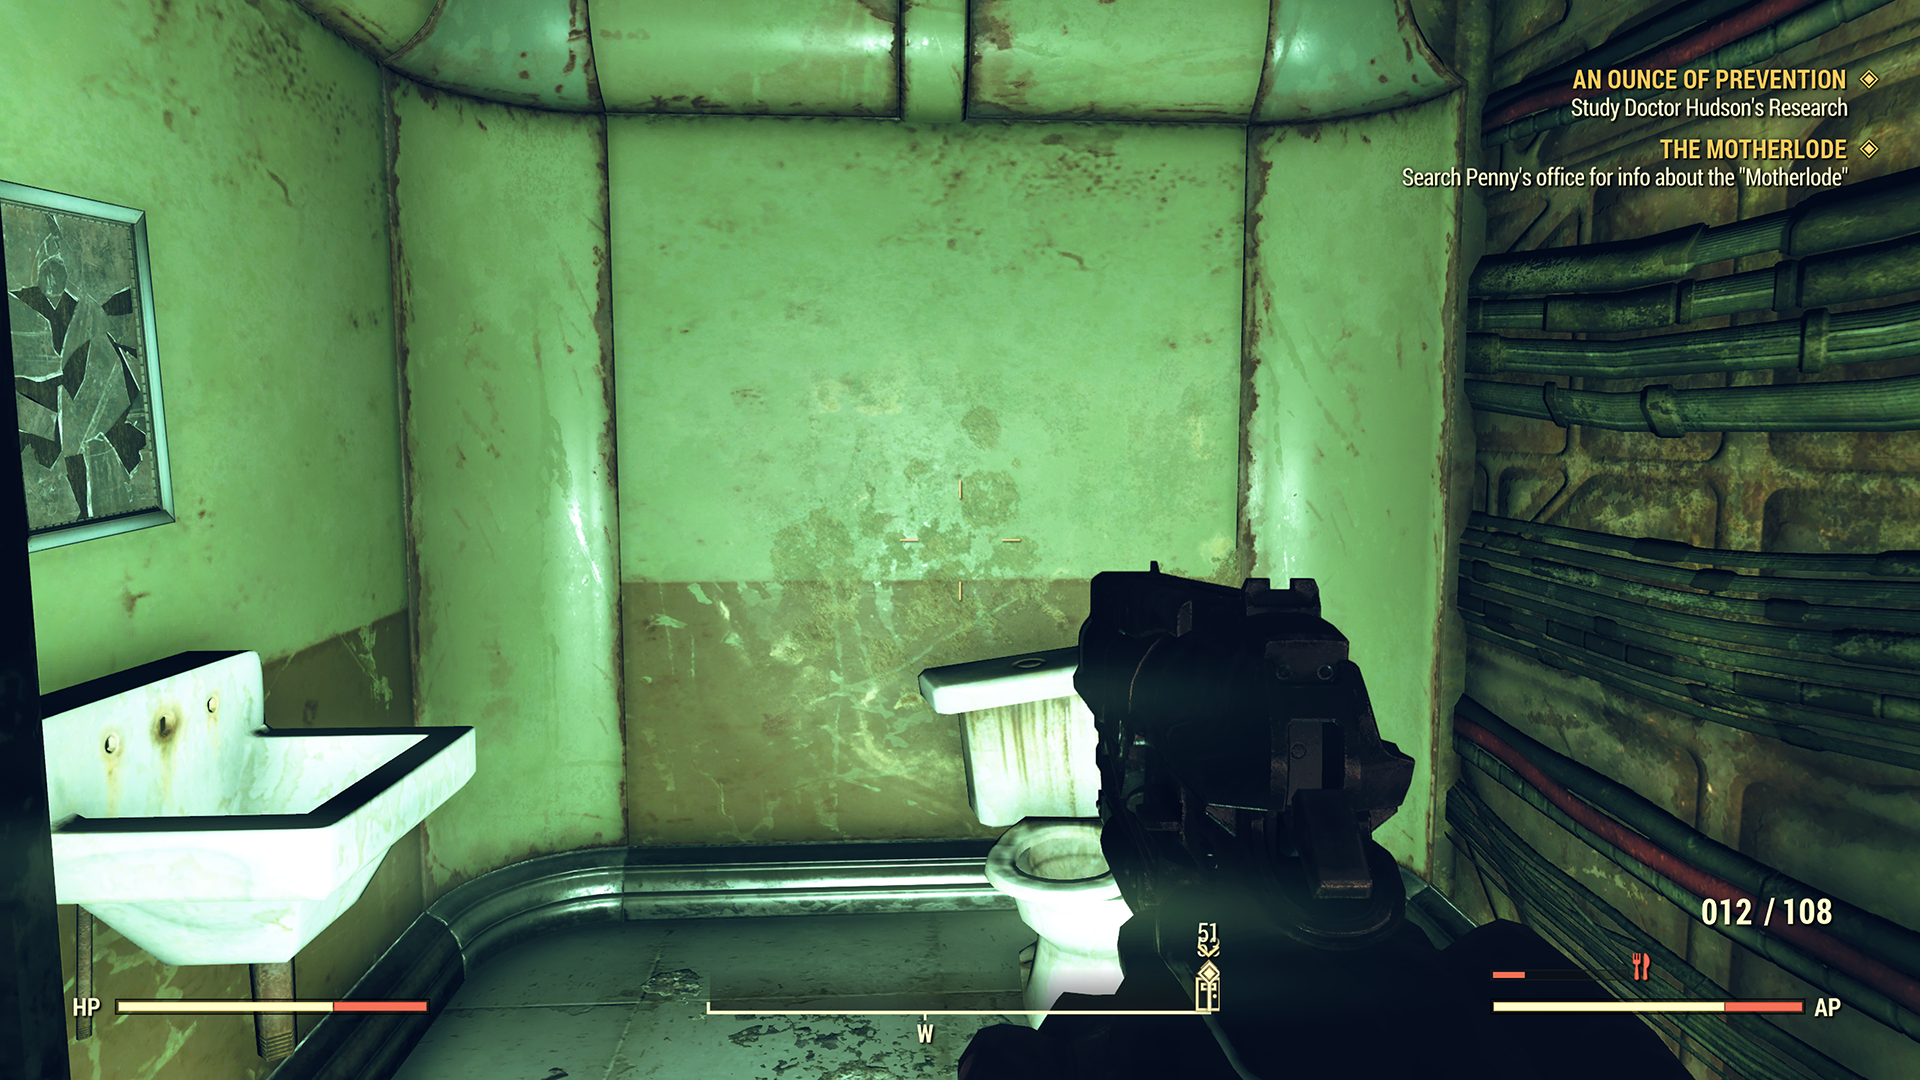 Fallout 76 Players Found the Developer Room, and the Game's Only NPC